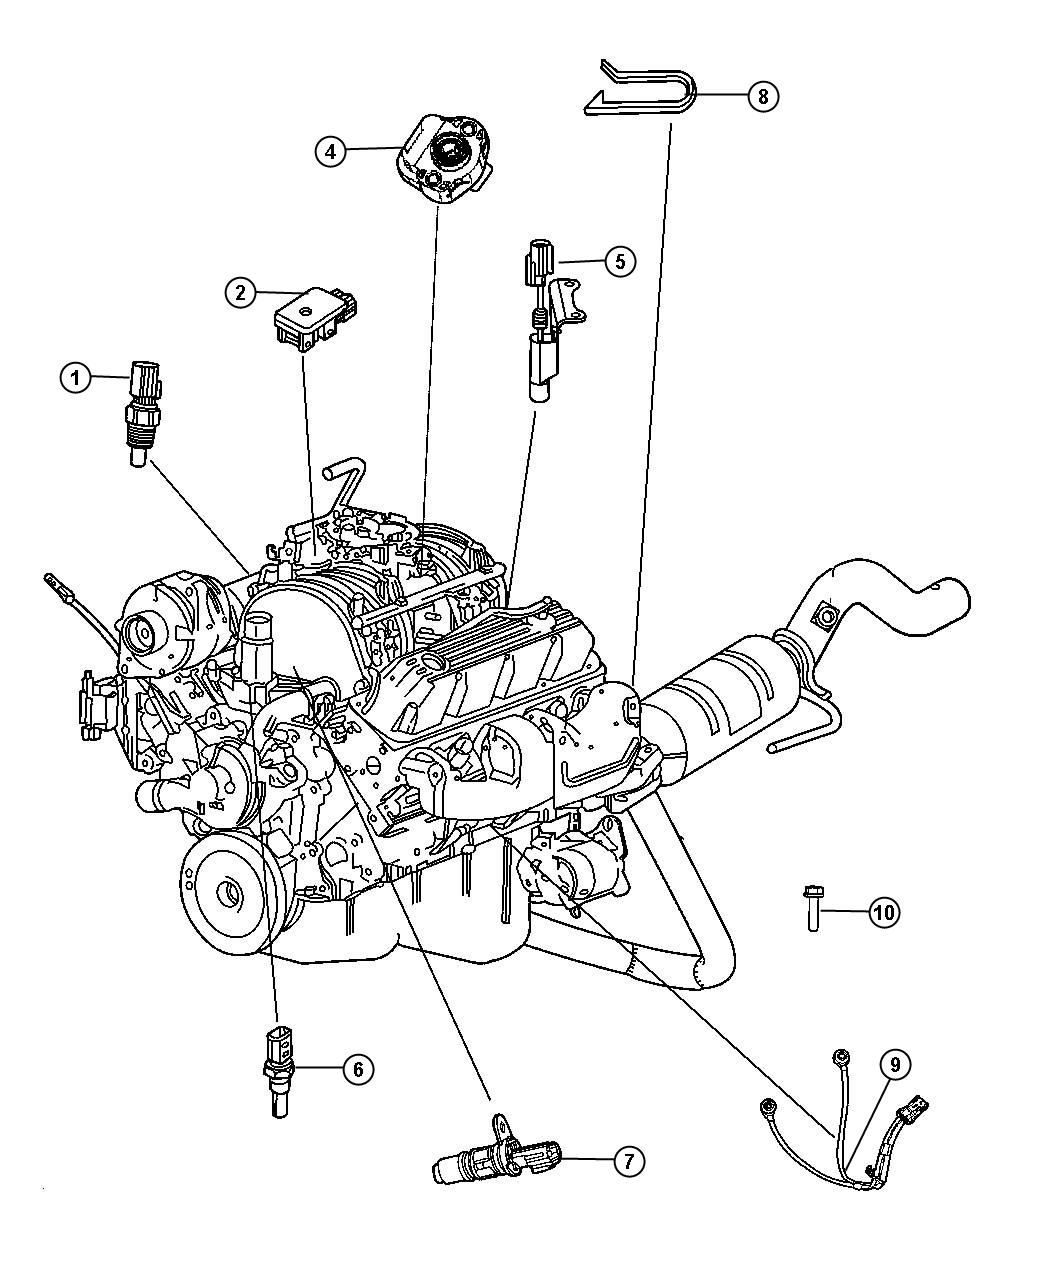 found a neat fog light wiring diagram but whats this